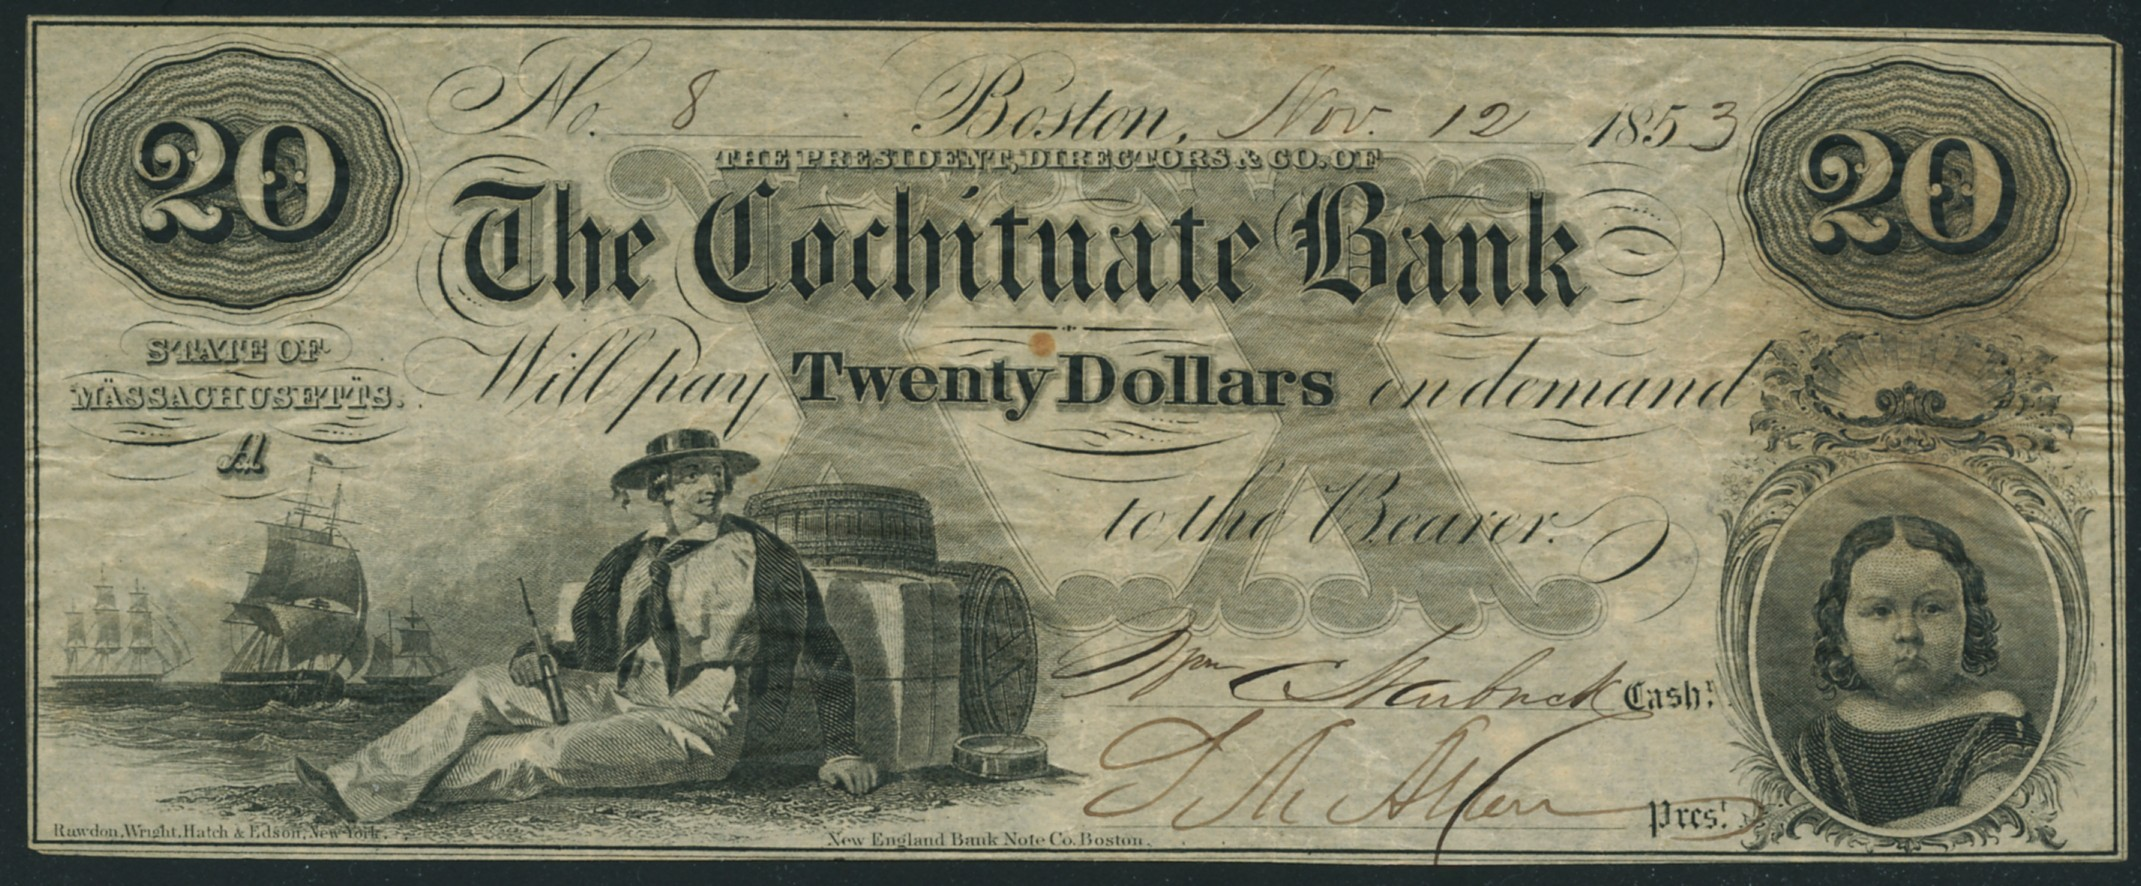 20 Cochituate Bank Face.jpg